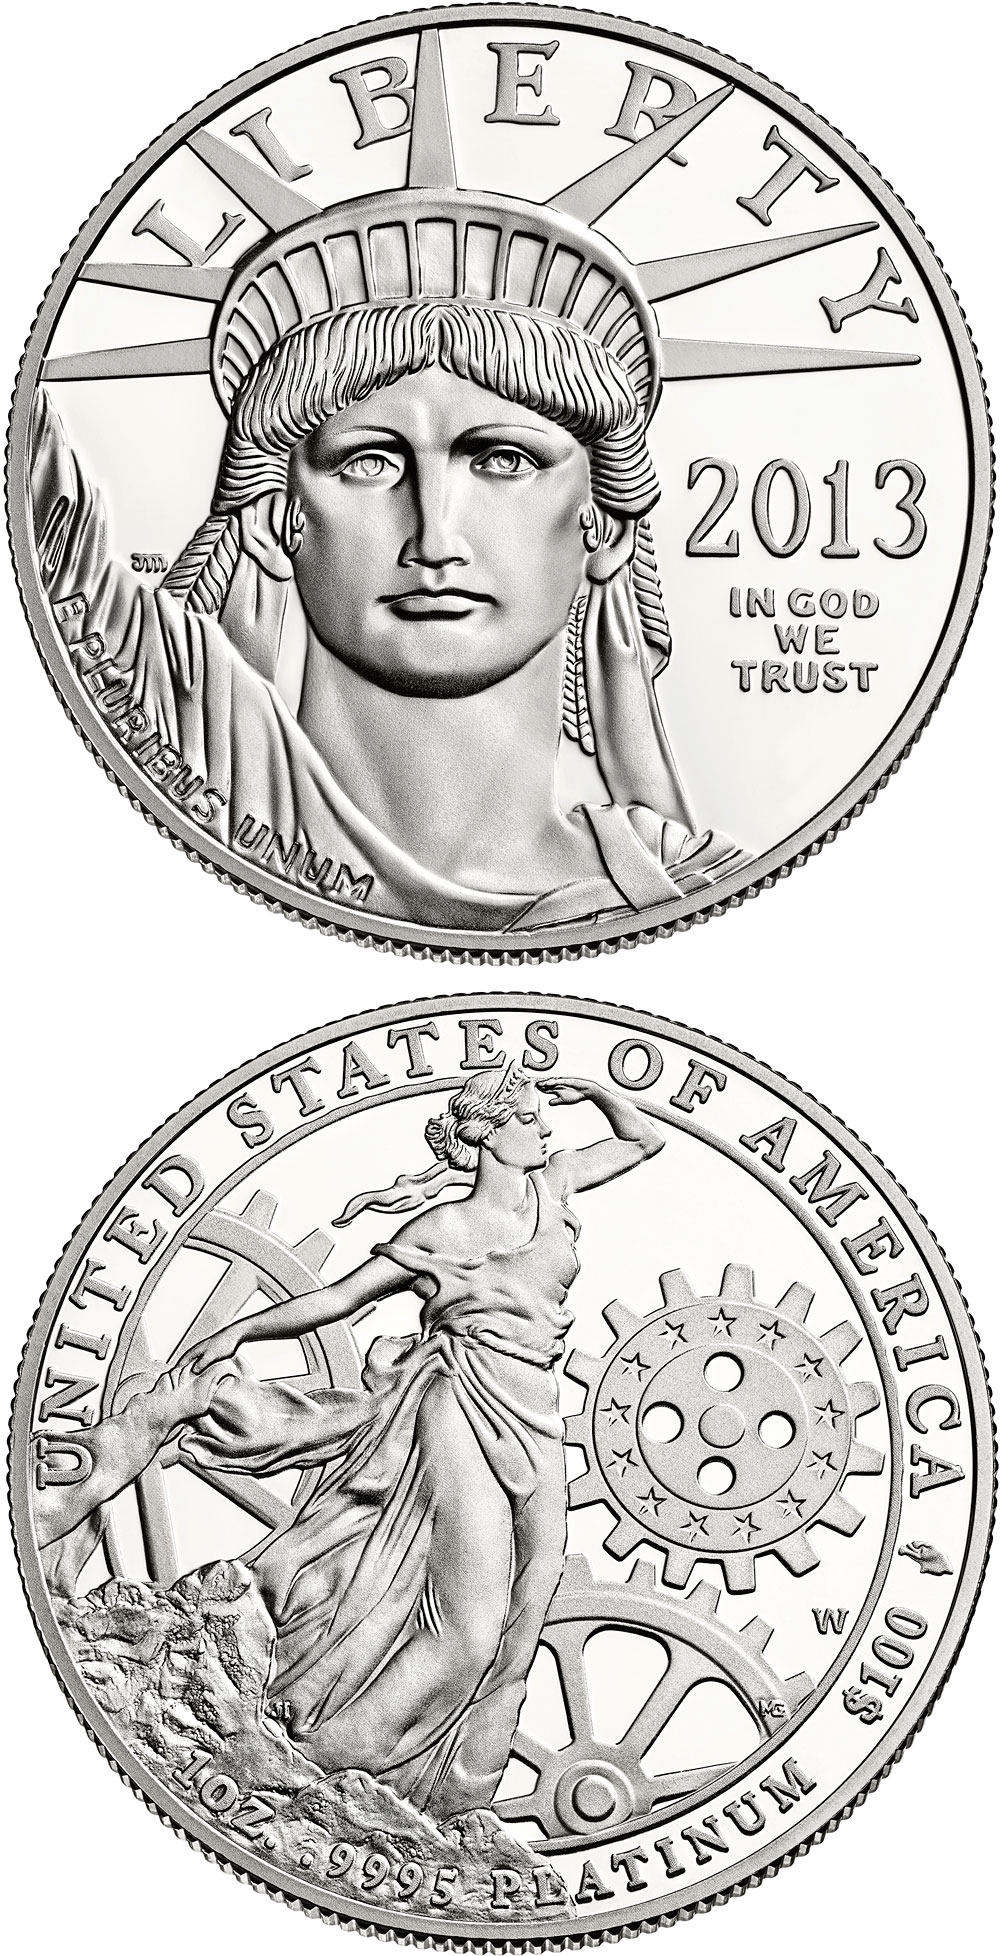 Image of 100 dollars coin - American Eagle Platinum One Ounce Proof Coin | USA 2013